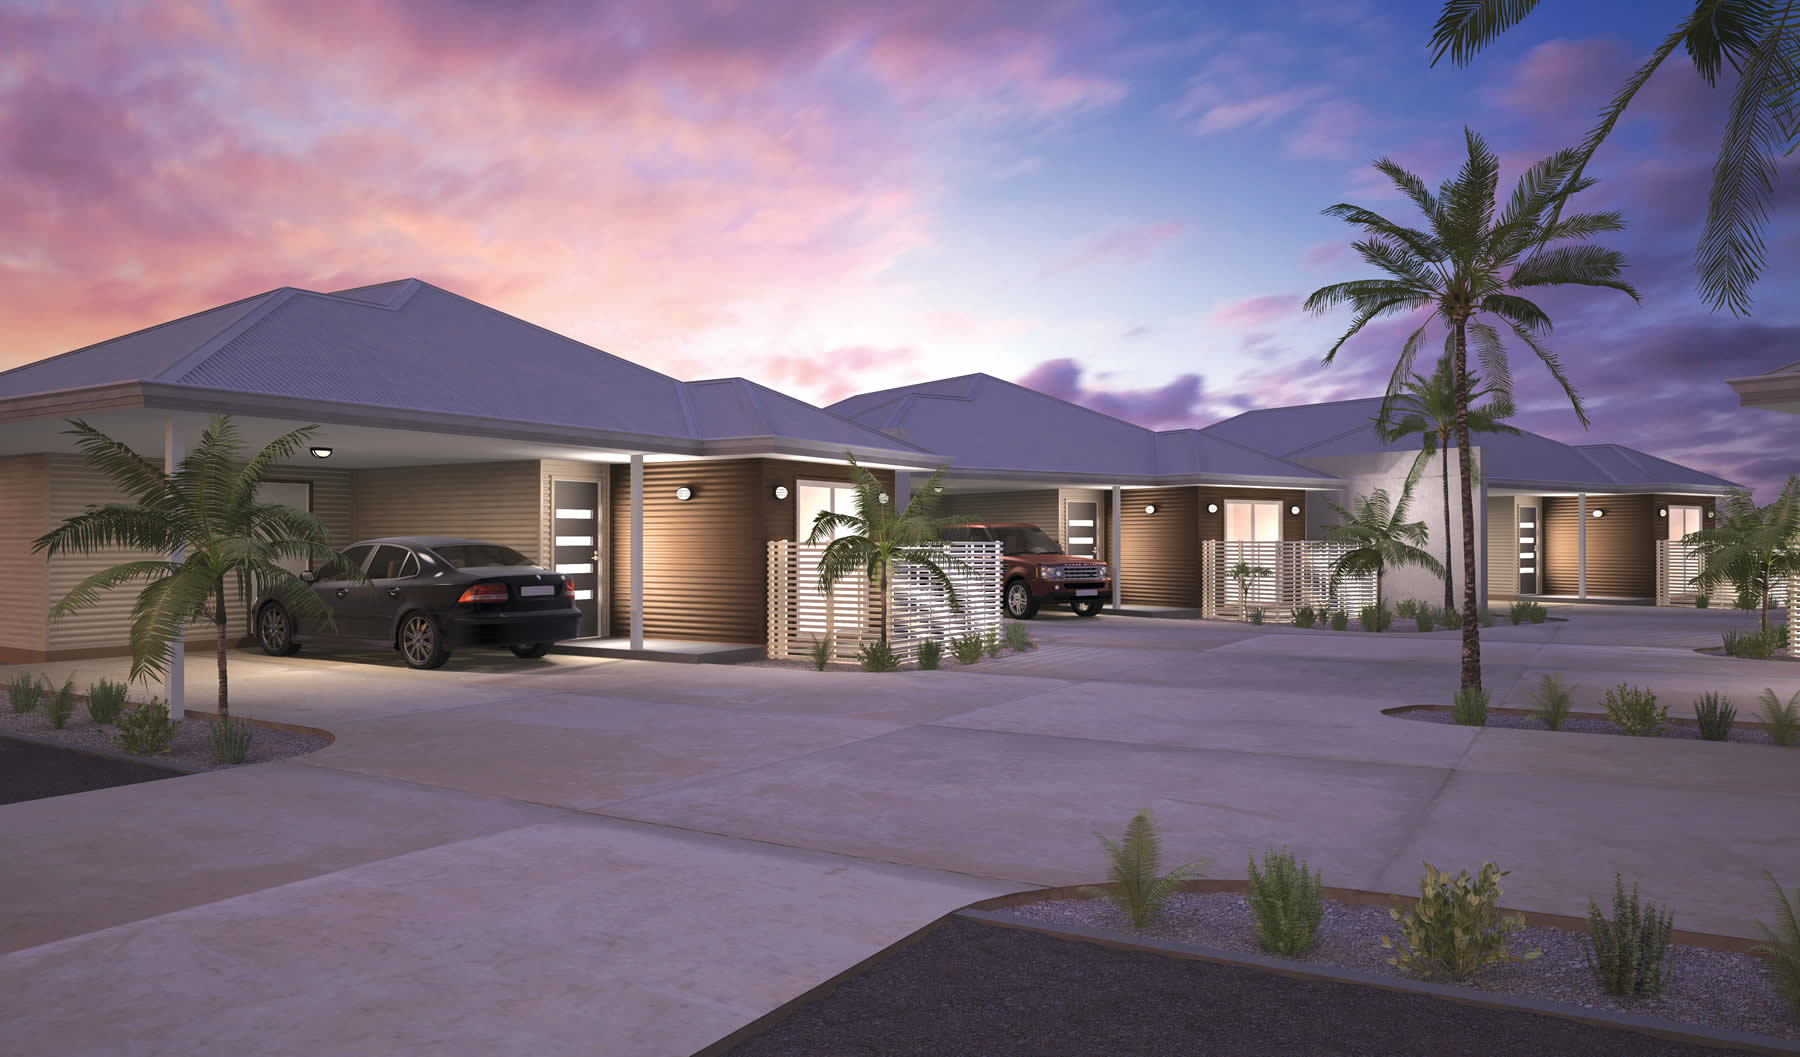 House and land packages broome derby wa eco constructions Multi residential for sale